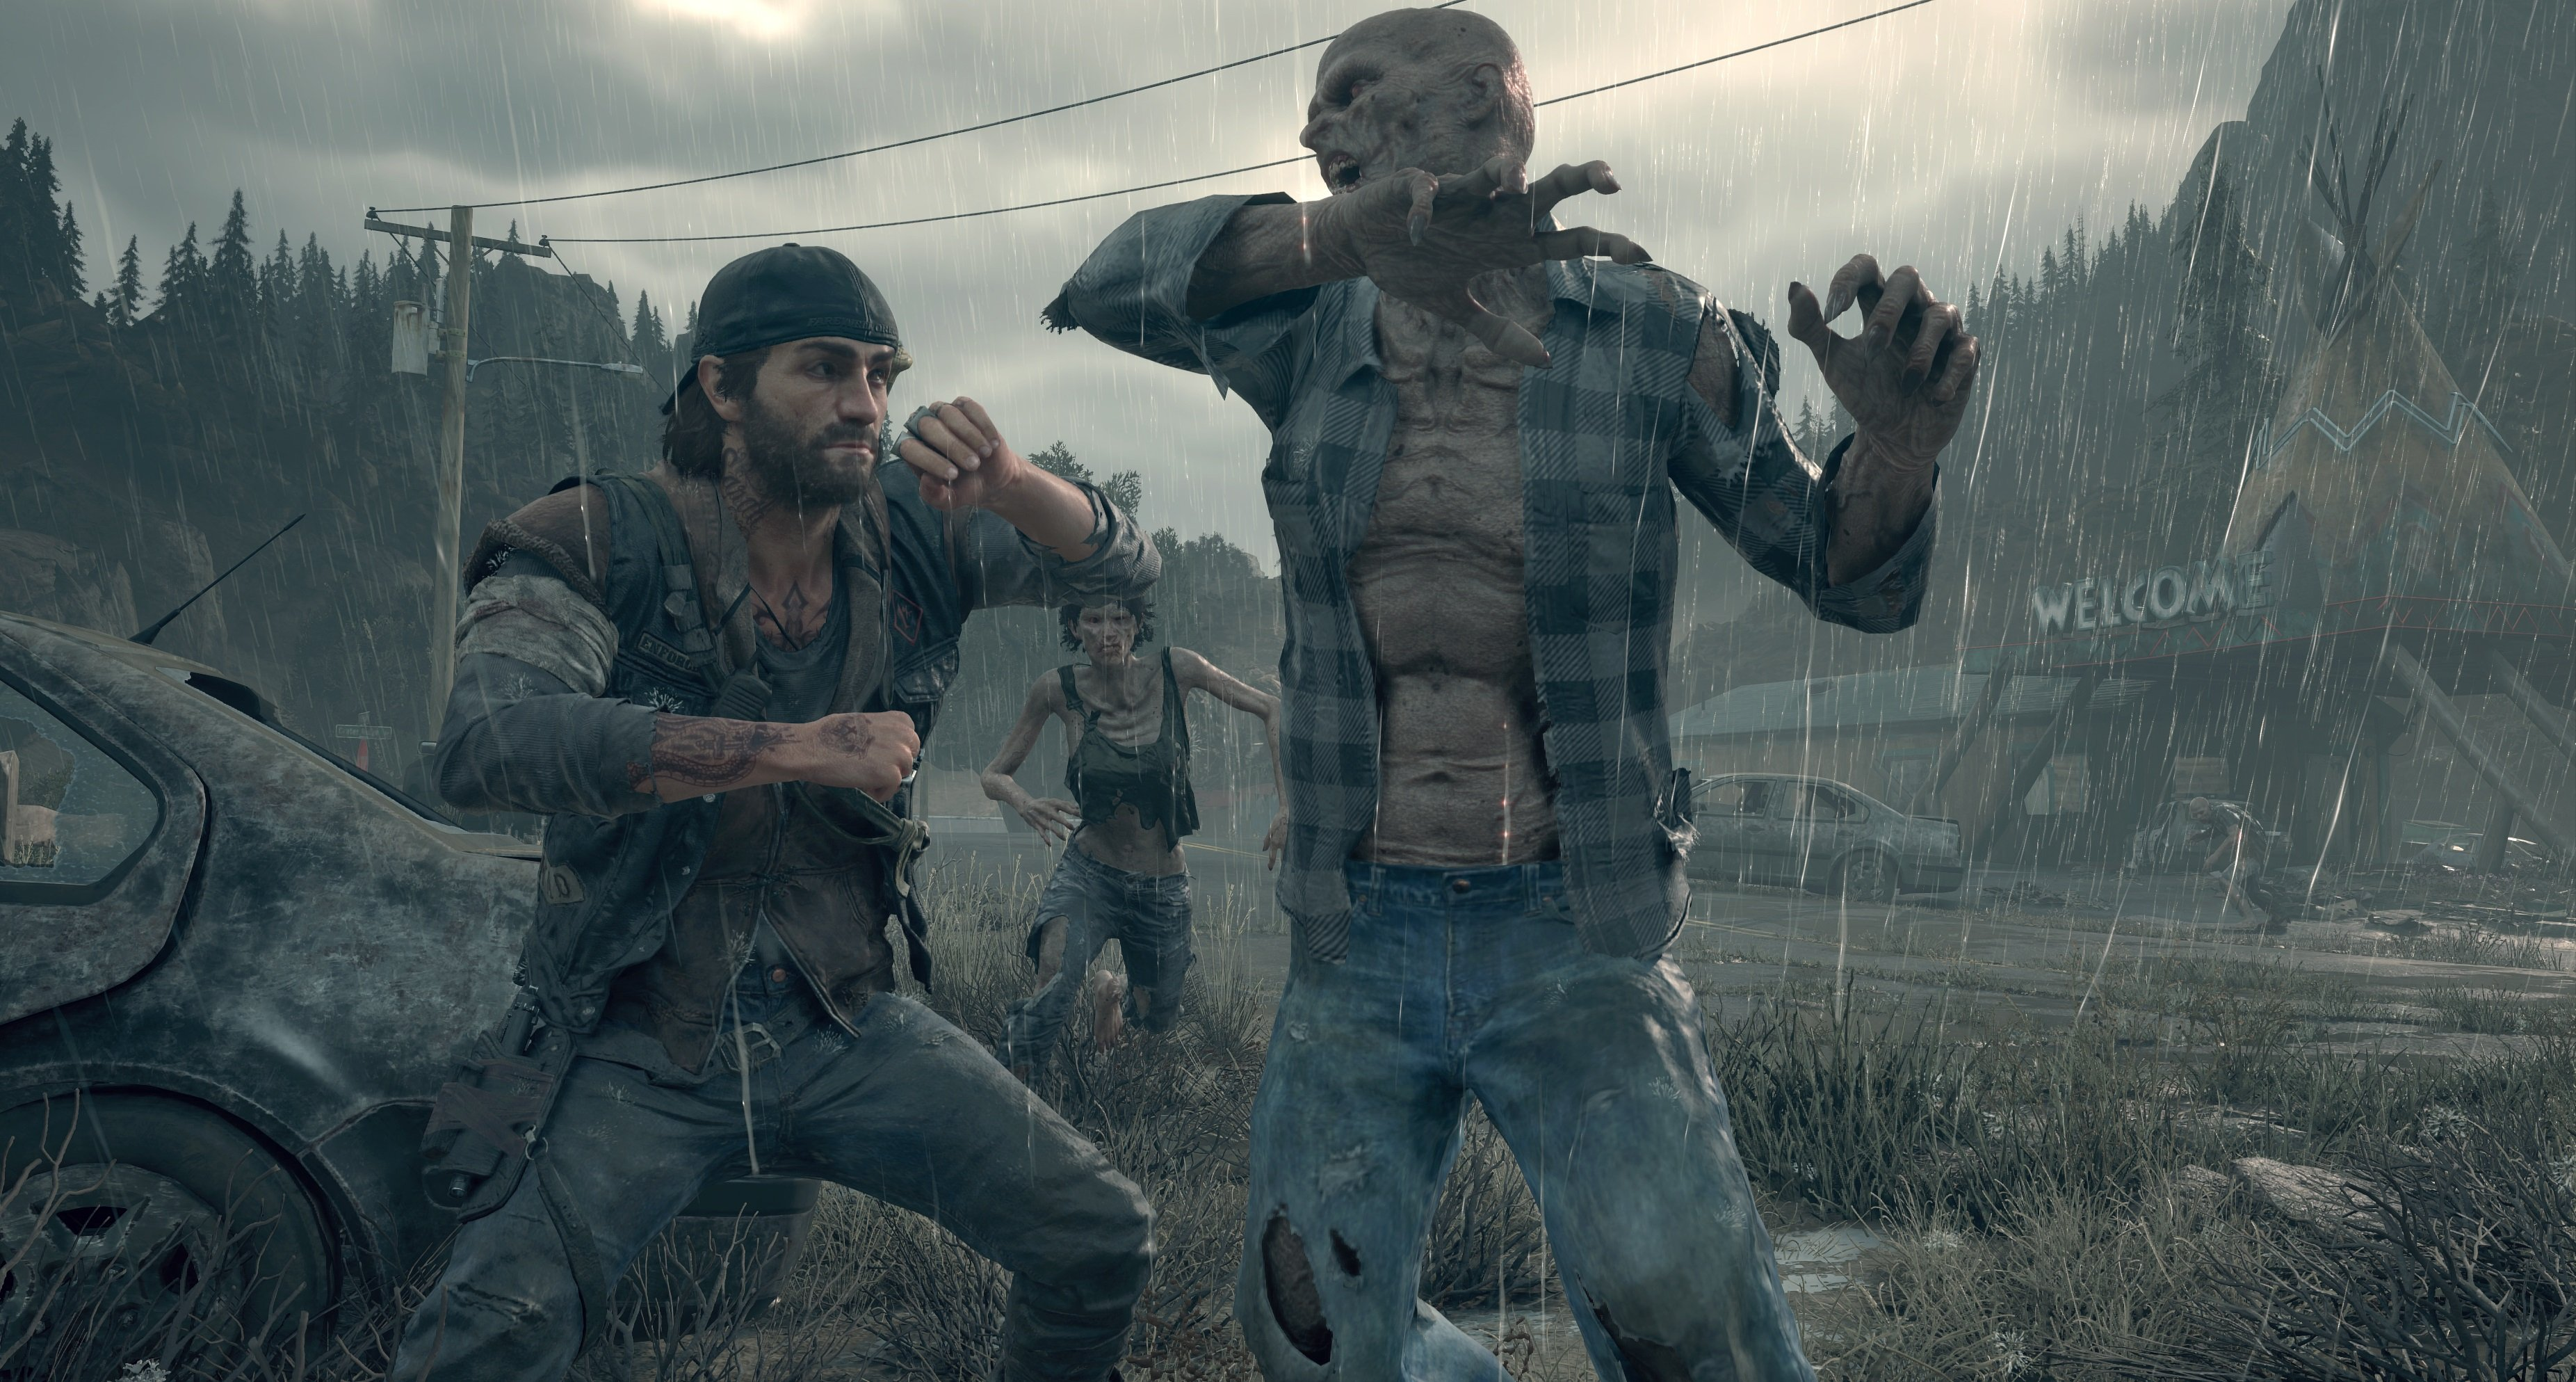 PlayStation boss says 'a whole slate' of PlayStation games is coming to PC, starting with Days Gone screenshot